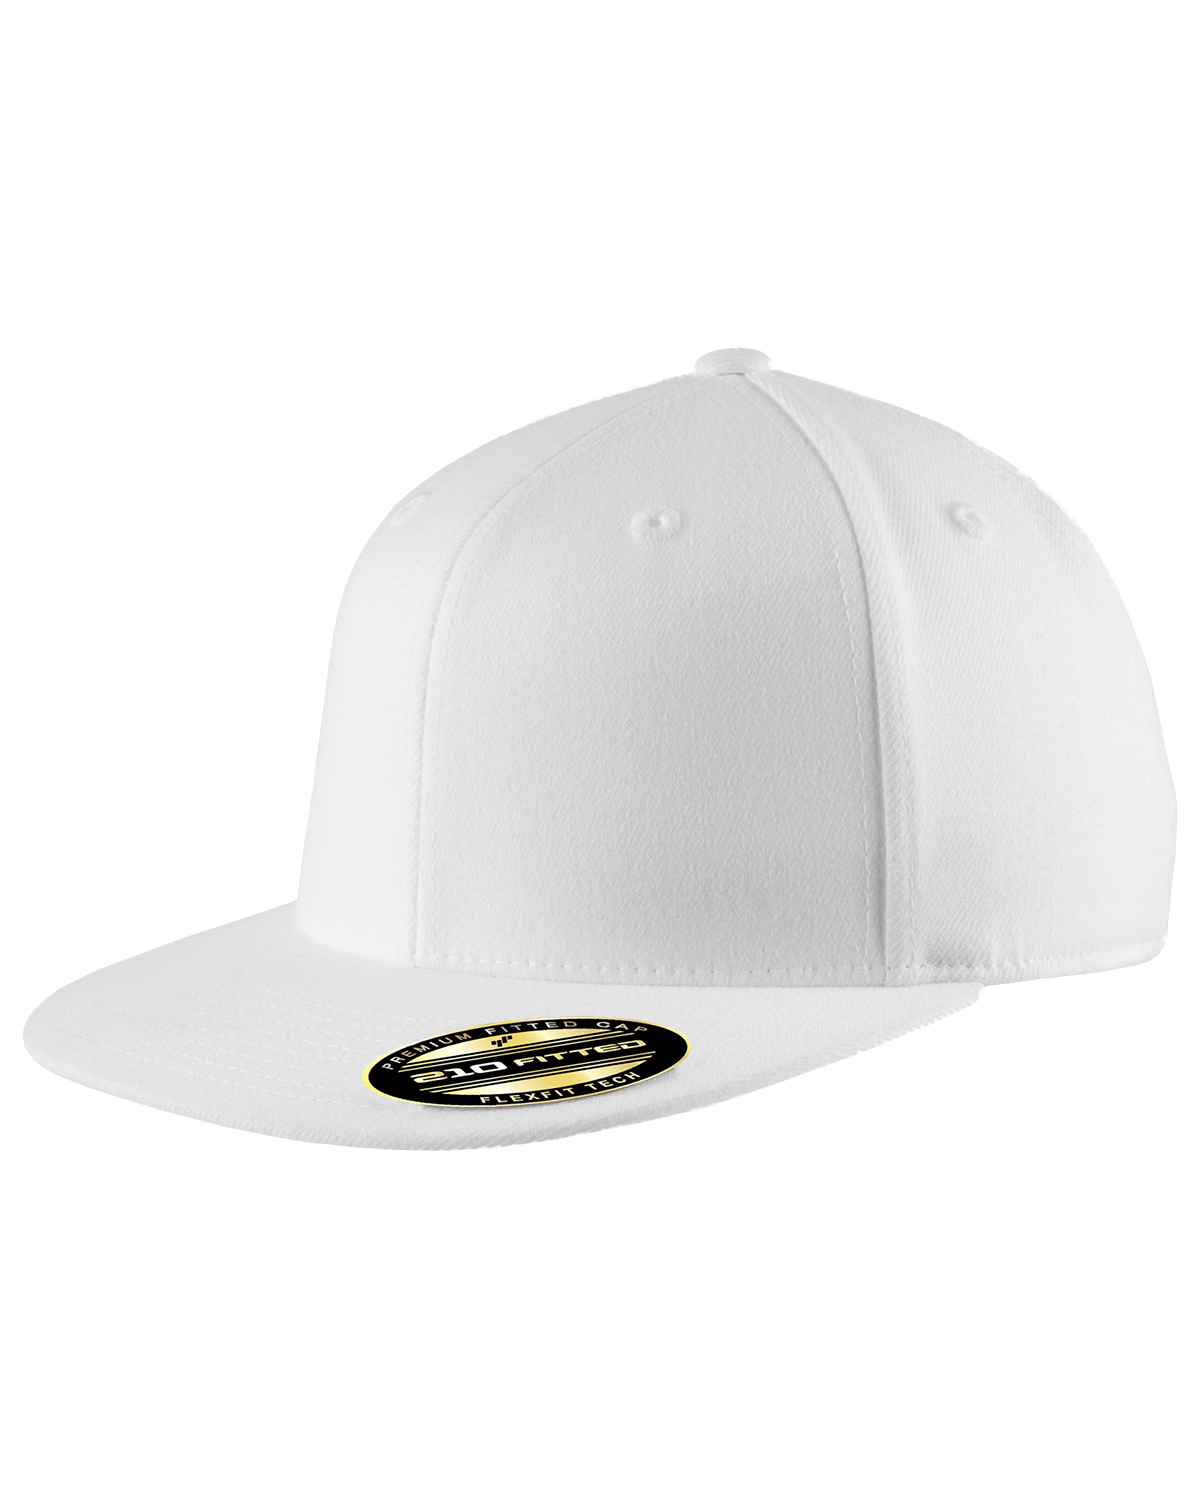 Port Authority C808 Unisex Flexfit Flat Bill Cap White at GotApparel